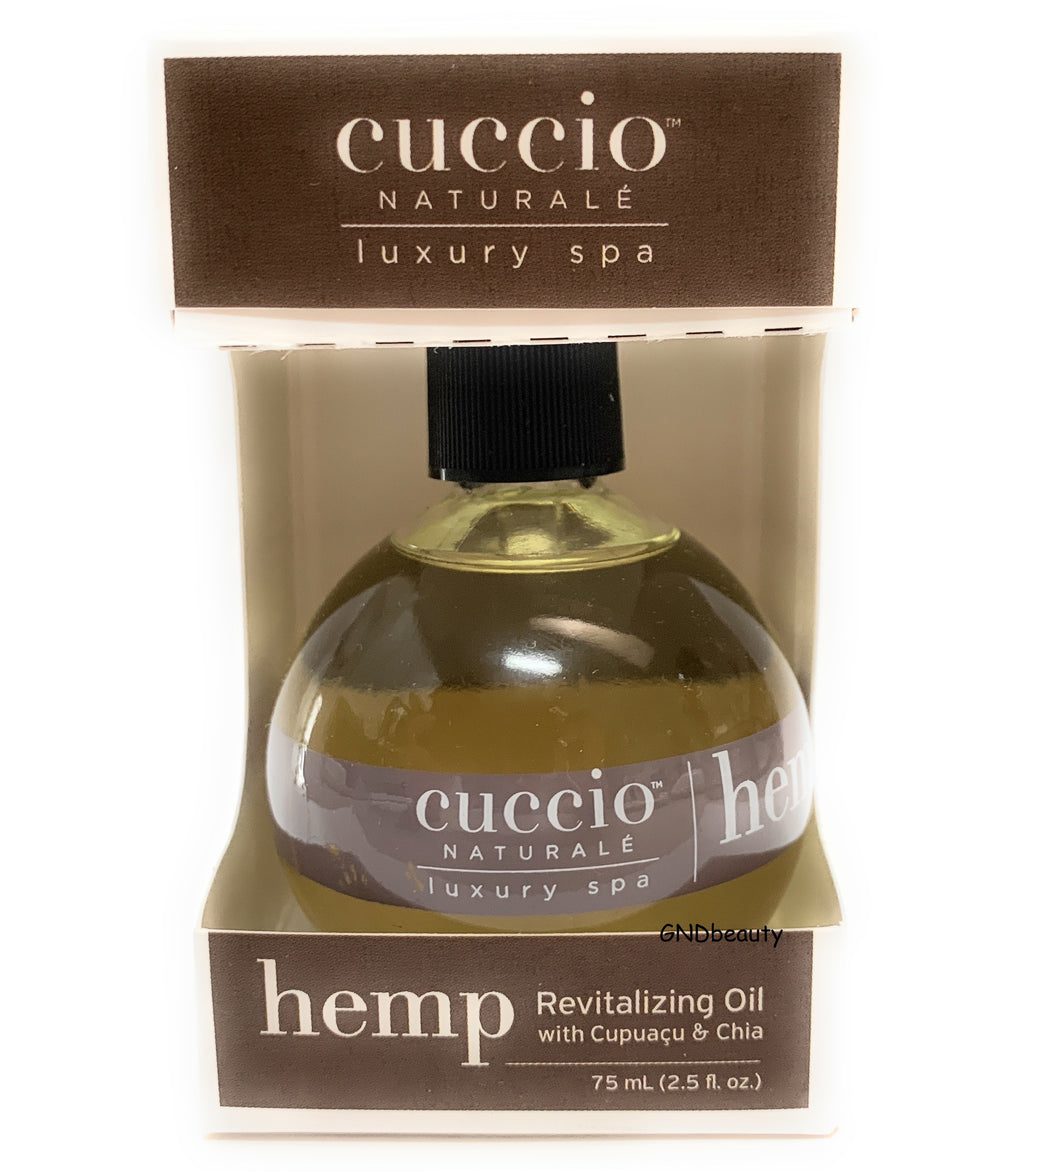 Cuccio Naturale HEMP Revitalizing Oil with Cupuacu and Chia 2.5 fl.oz